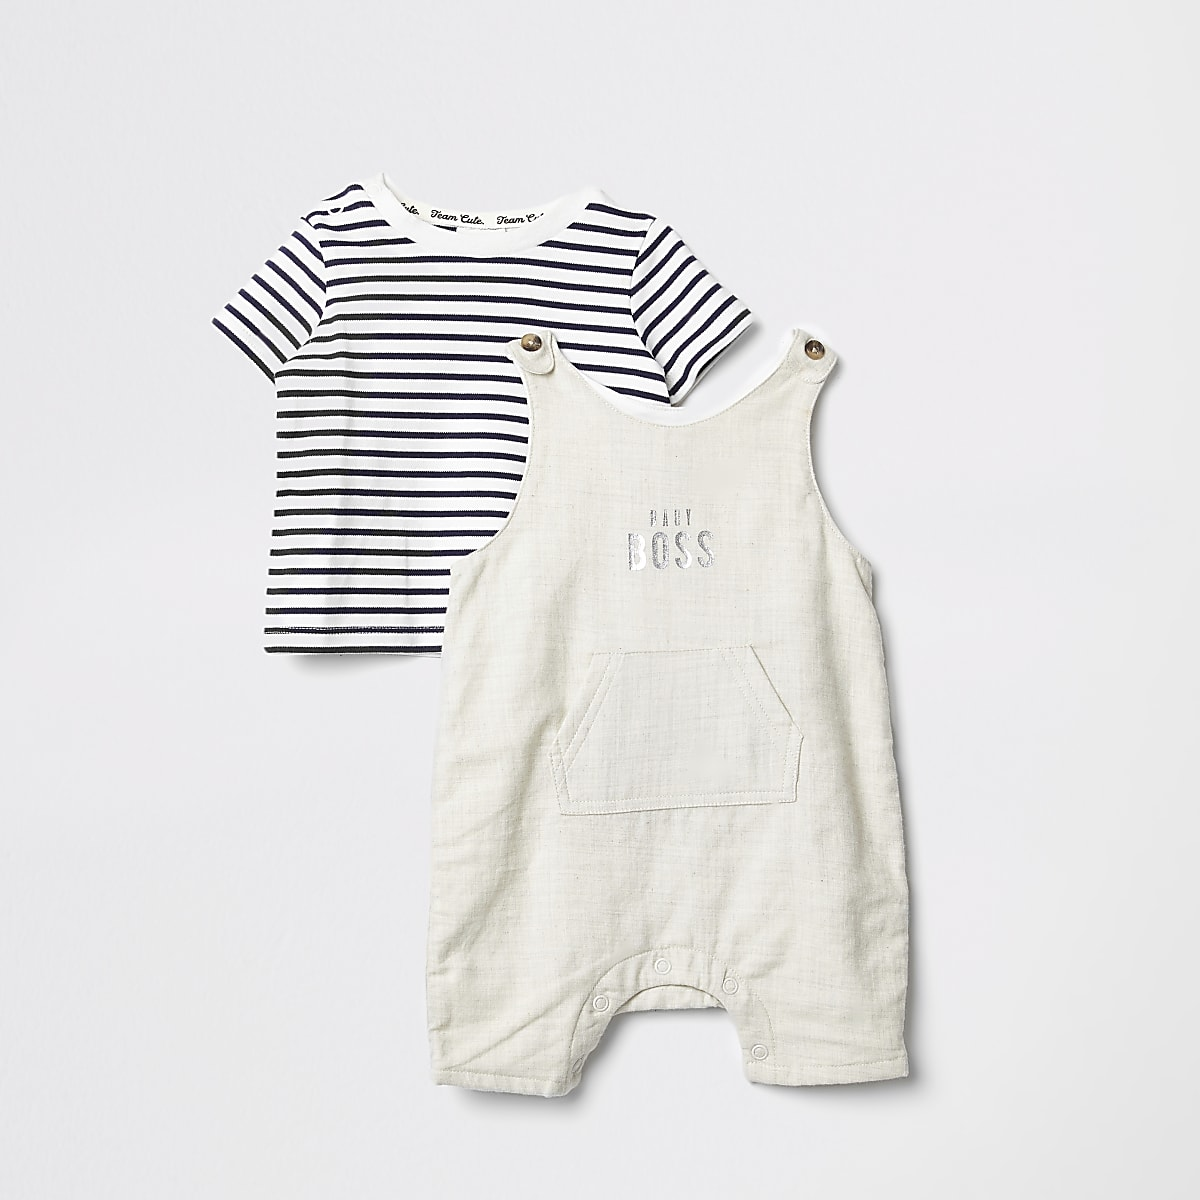 Baby cream dungarees outfit